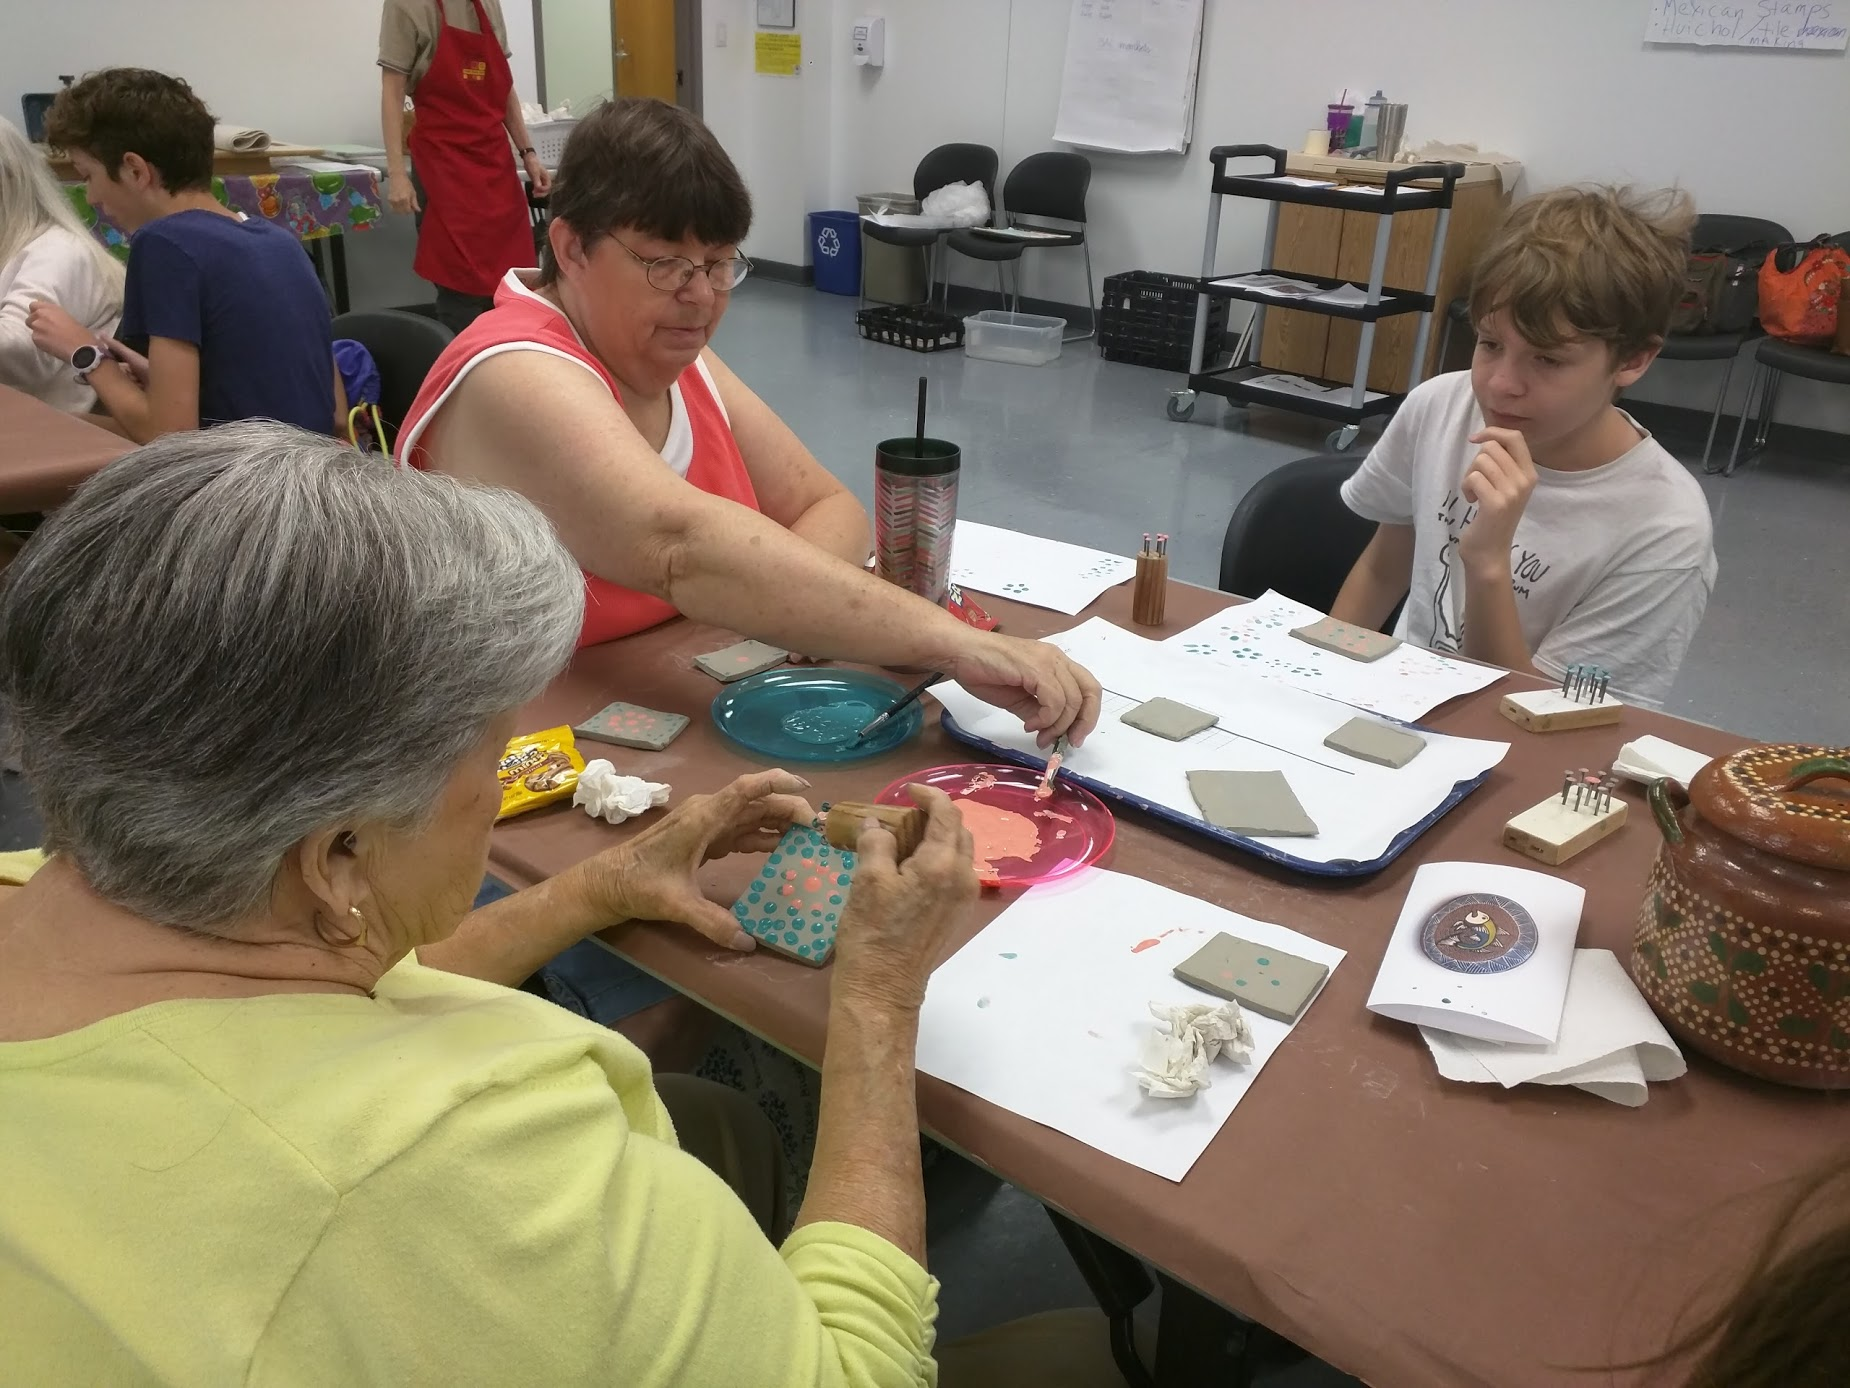 Sr Center1_Decorating clay tiles with dotted designs